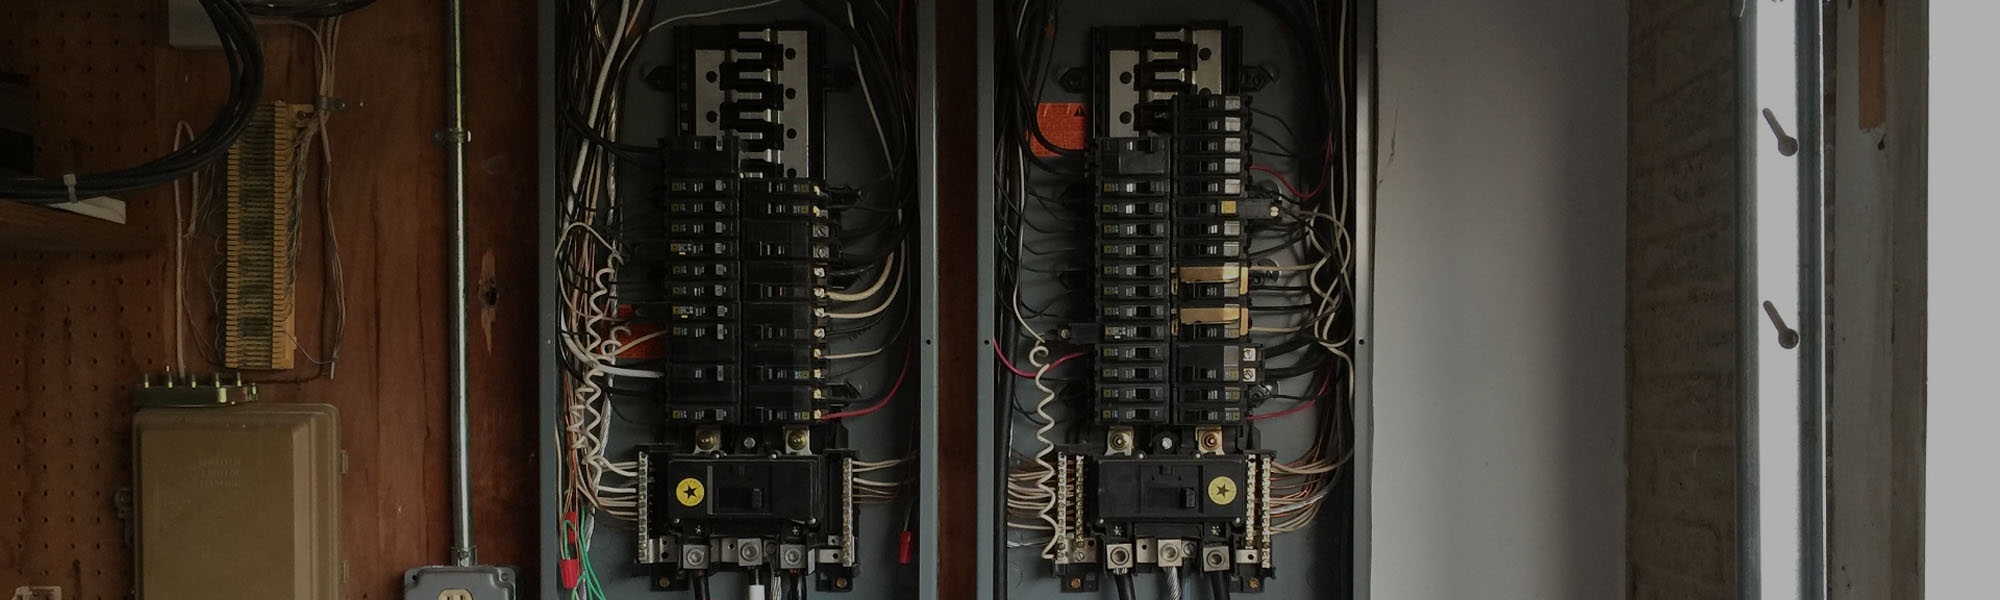 Electrical Panel Wiring in Houston | Texas Electrical Residential ...